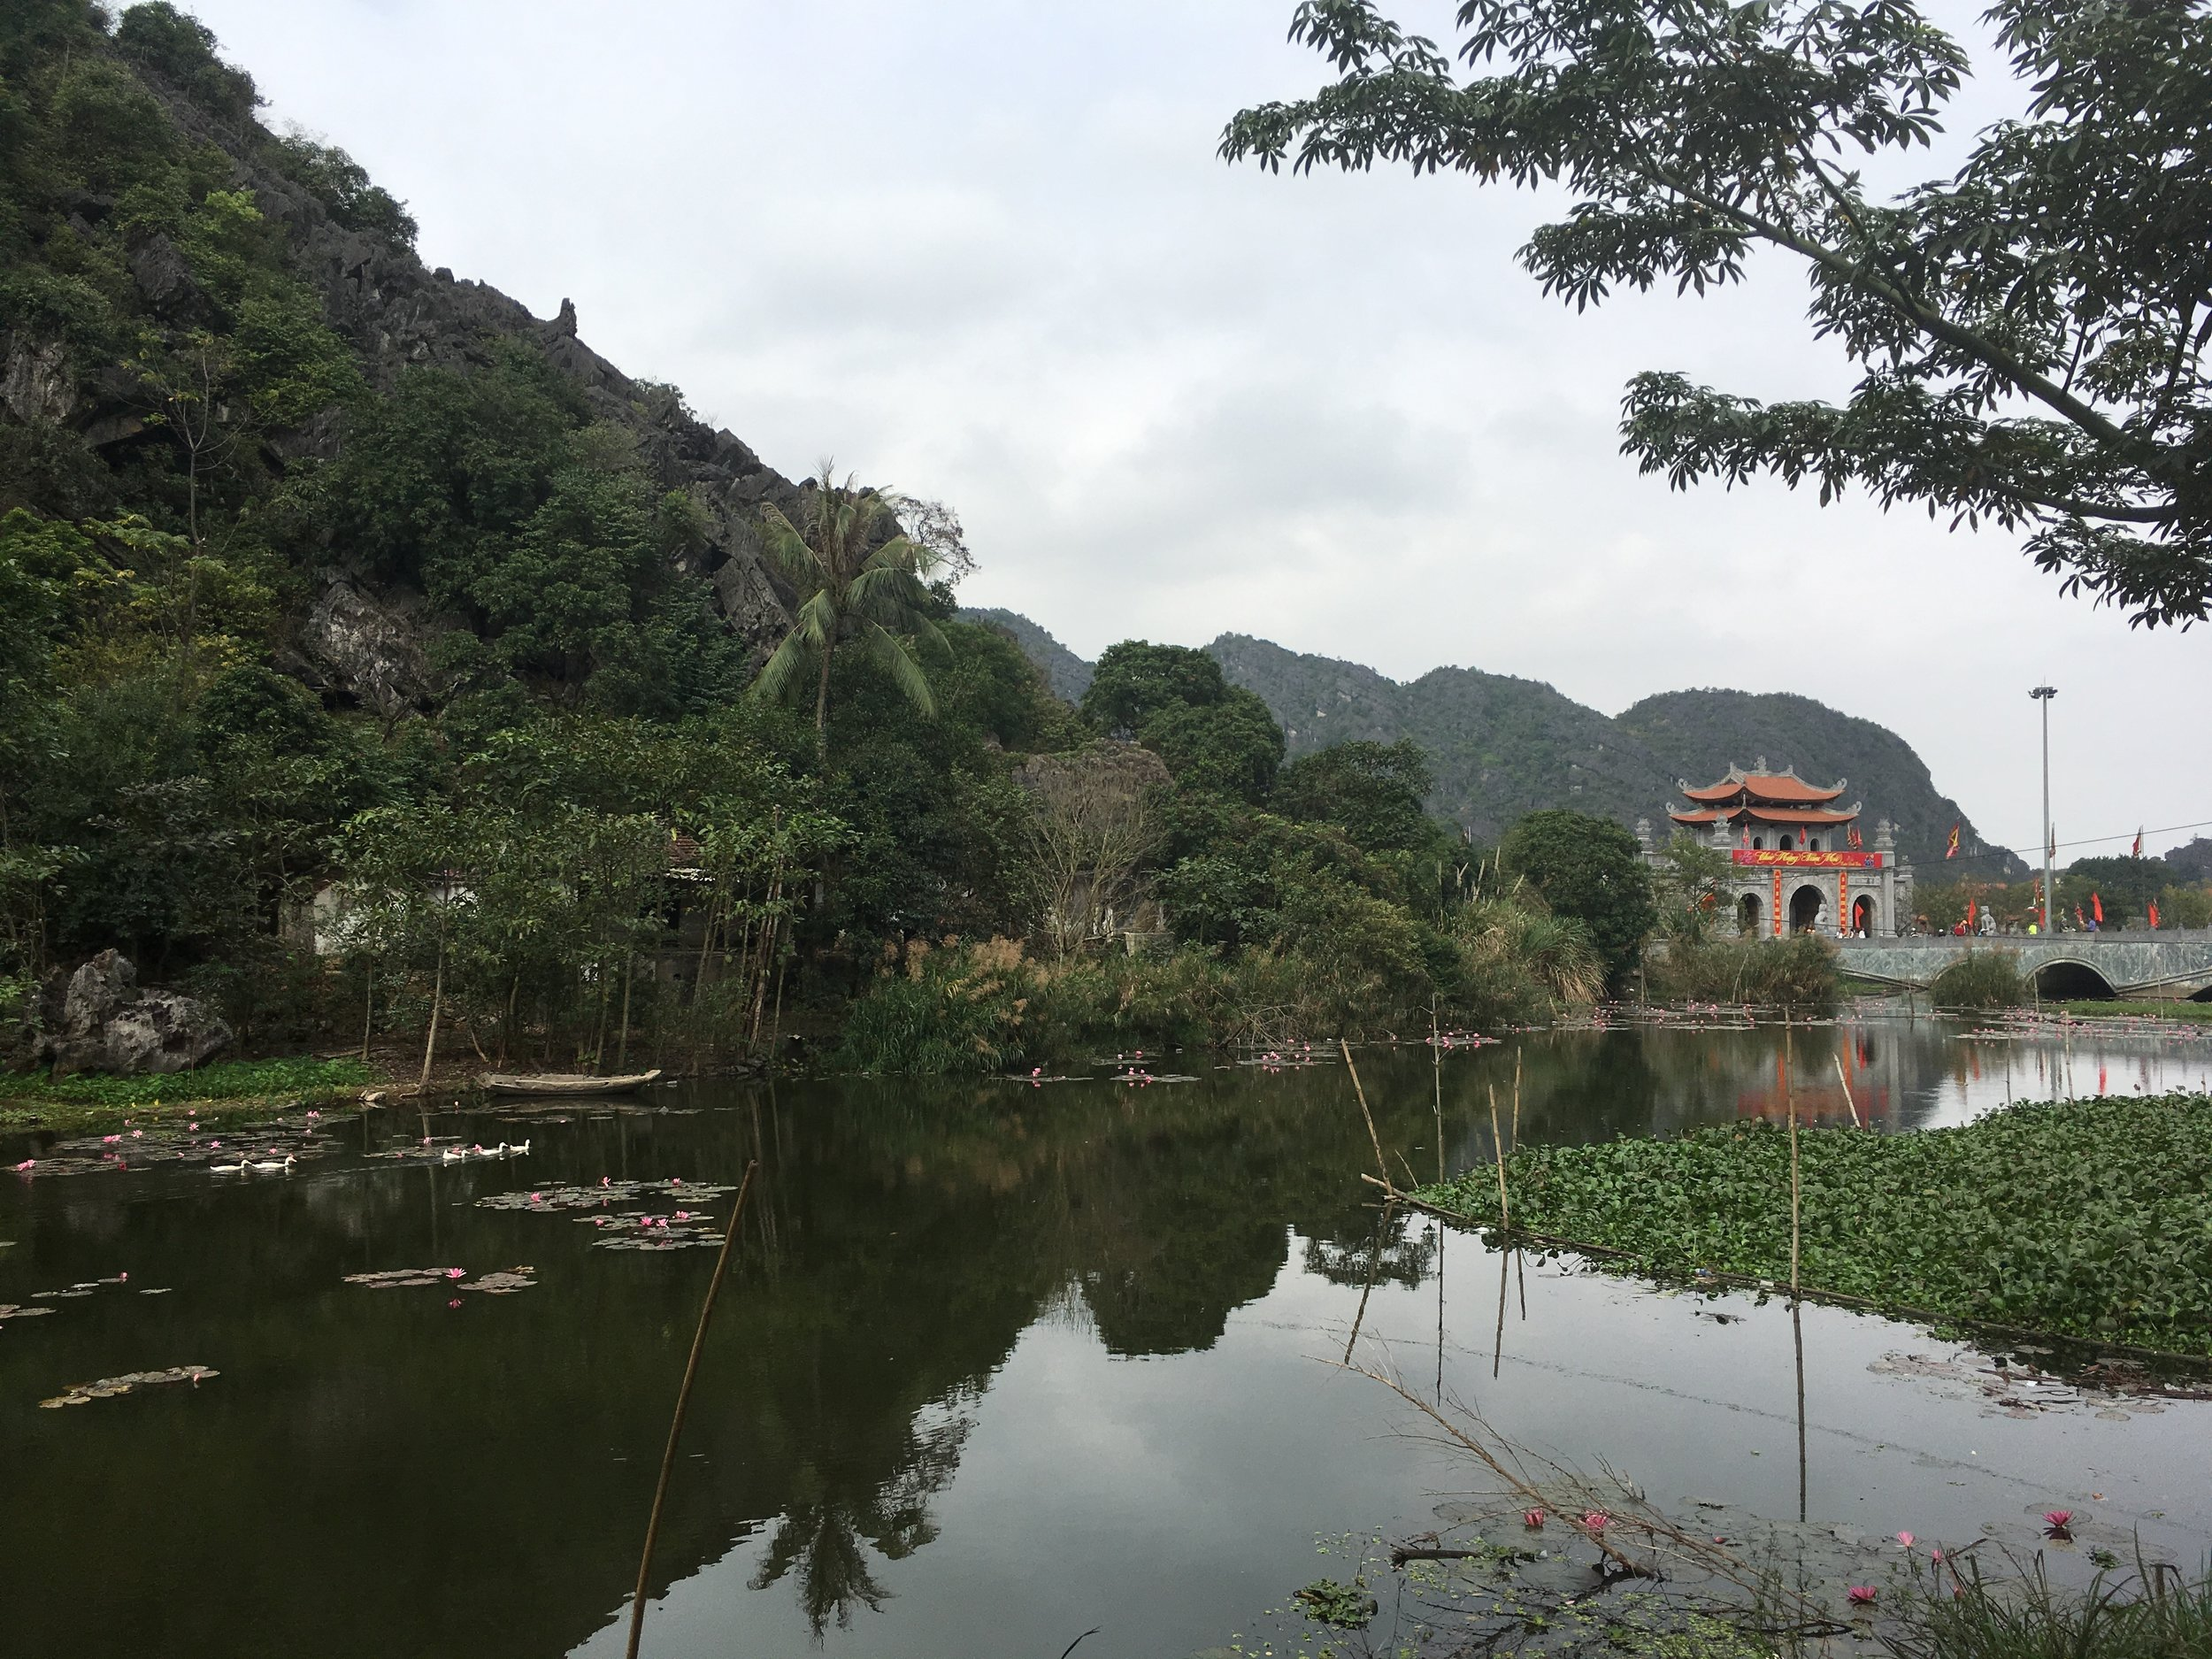 arriving in ninh binh to this beautiful landscape